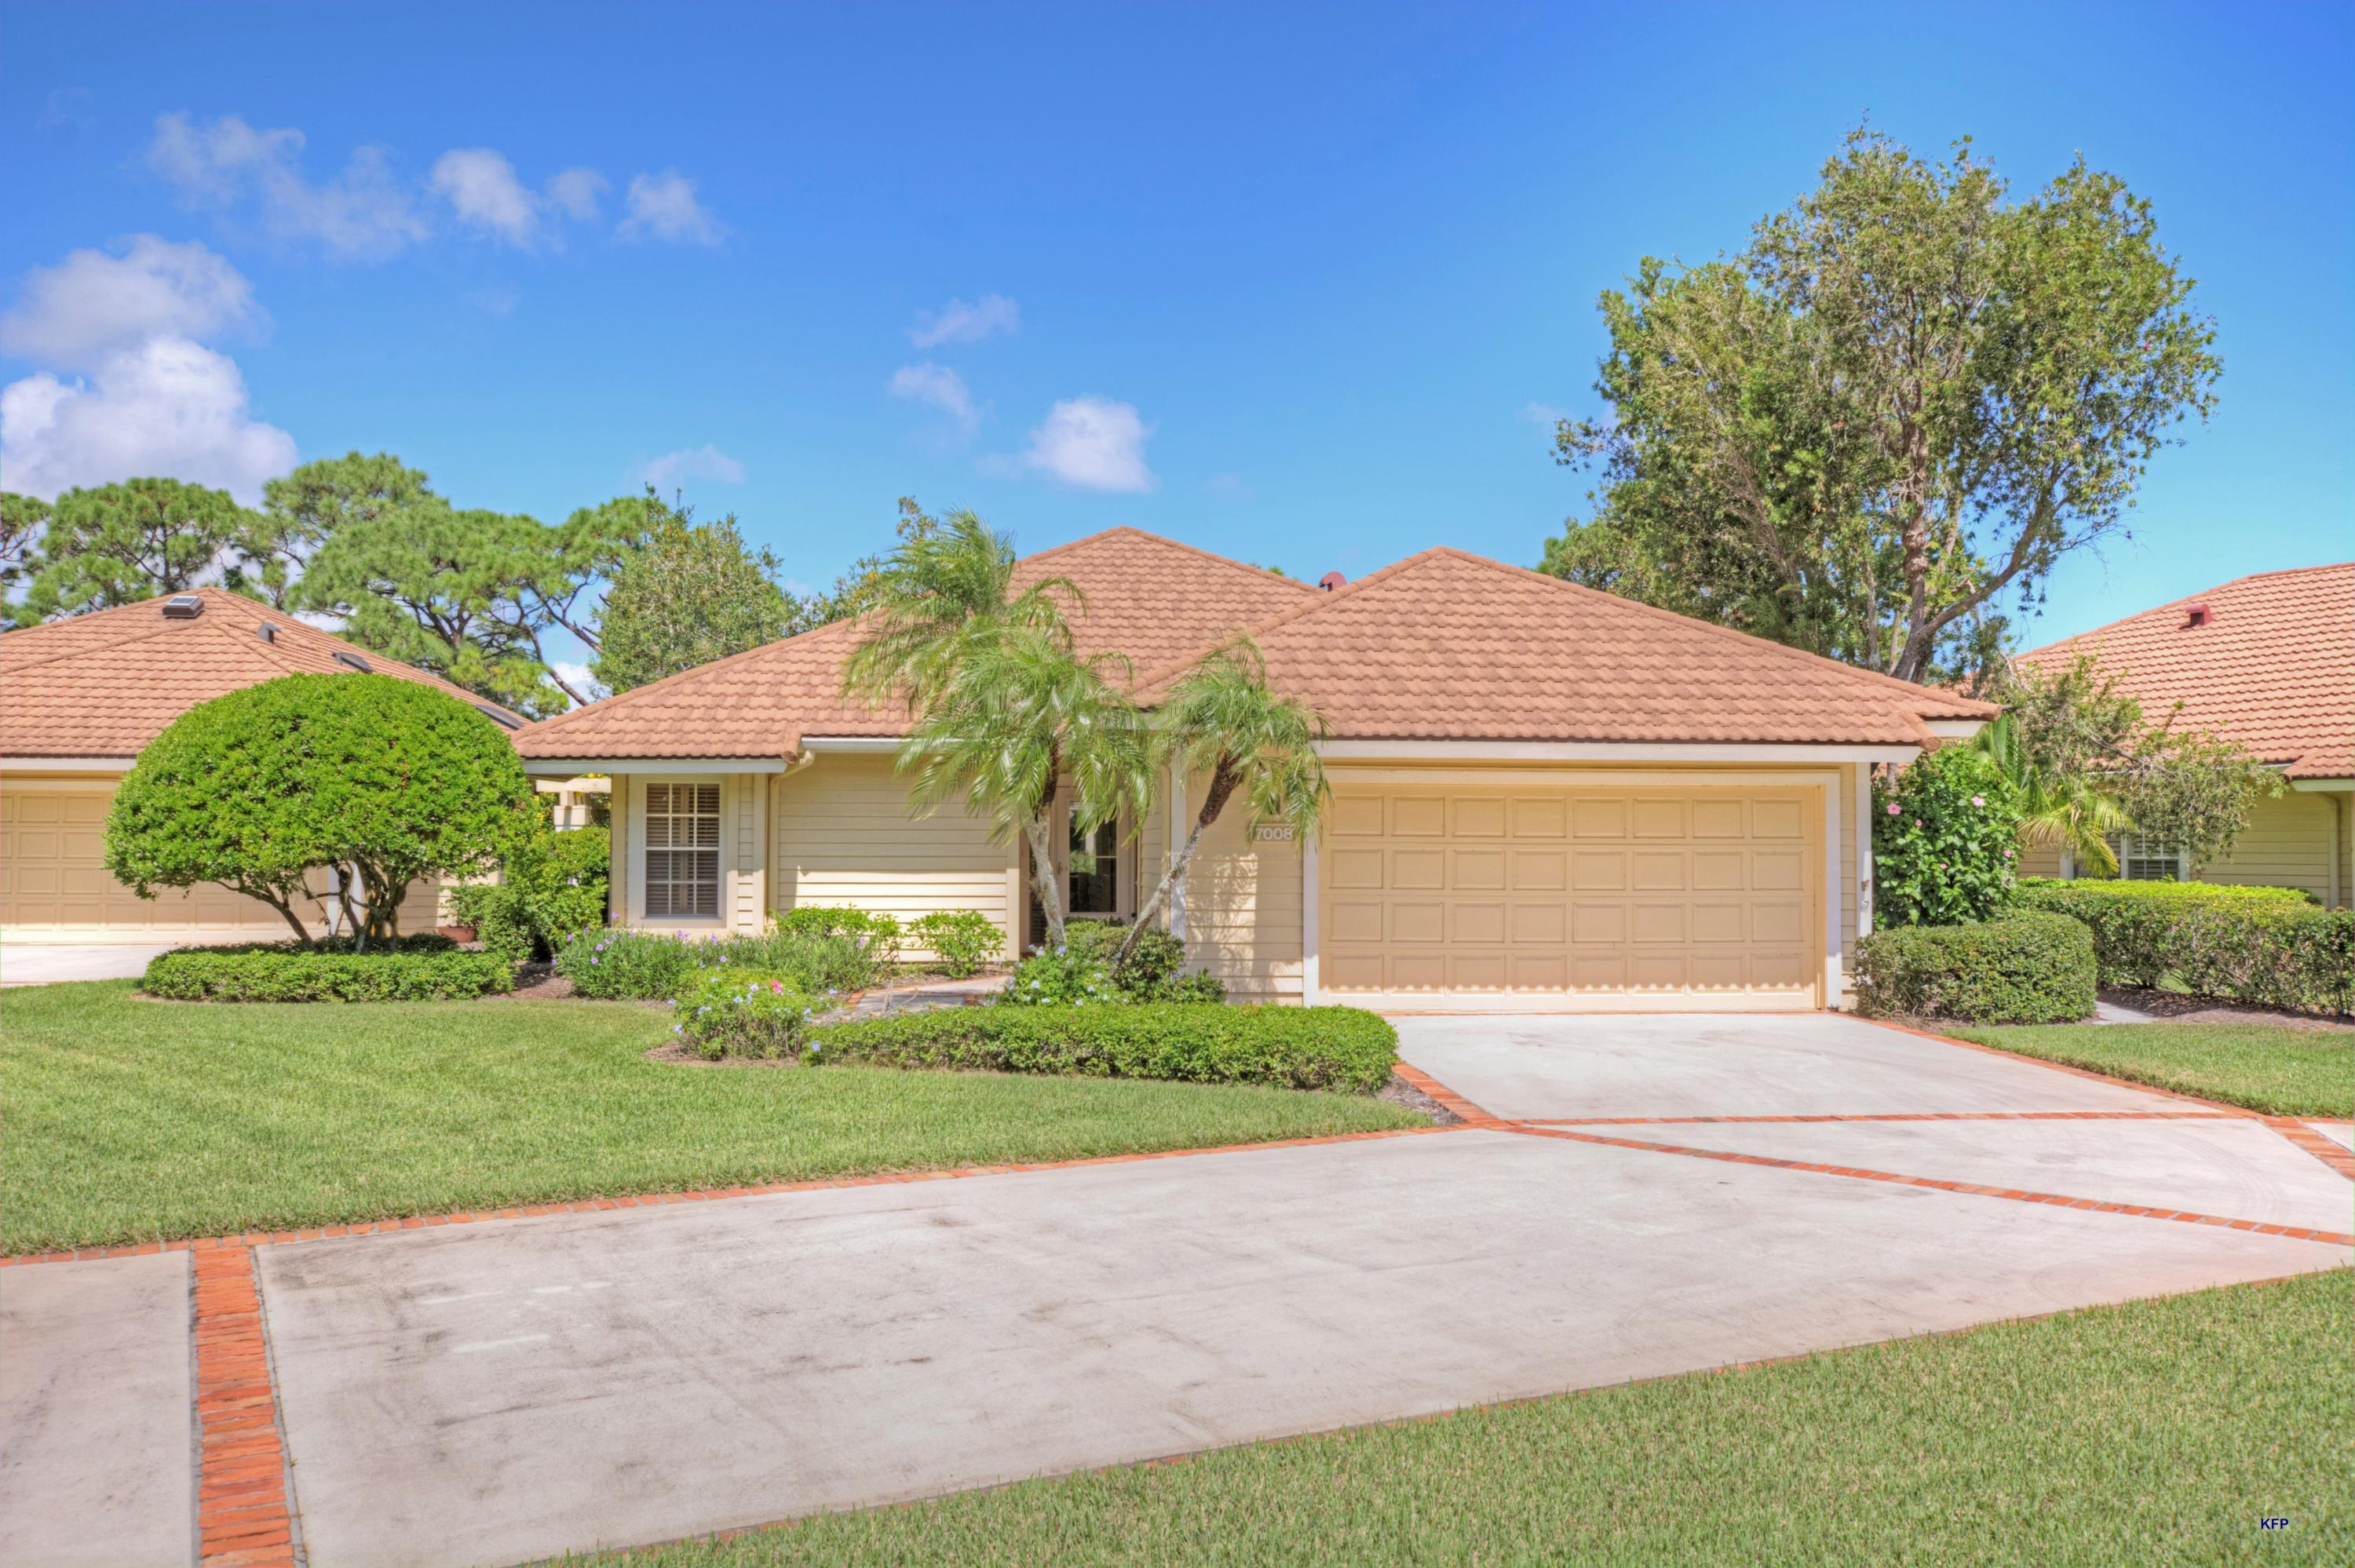 7008 Winged Foot Drive, Stuart, Florida 34997, 3 Bedrooms Bedrooms, ,2 BathroomsBathrooms,A,Single family,Winged Foot,RX-10474778